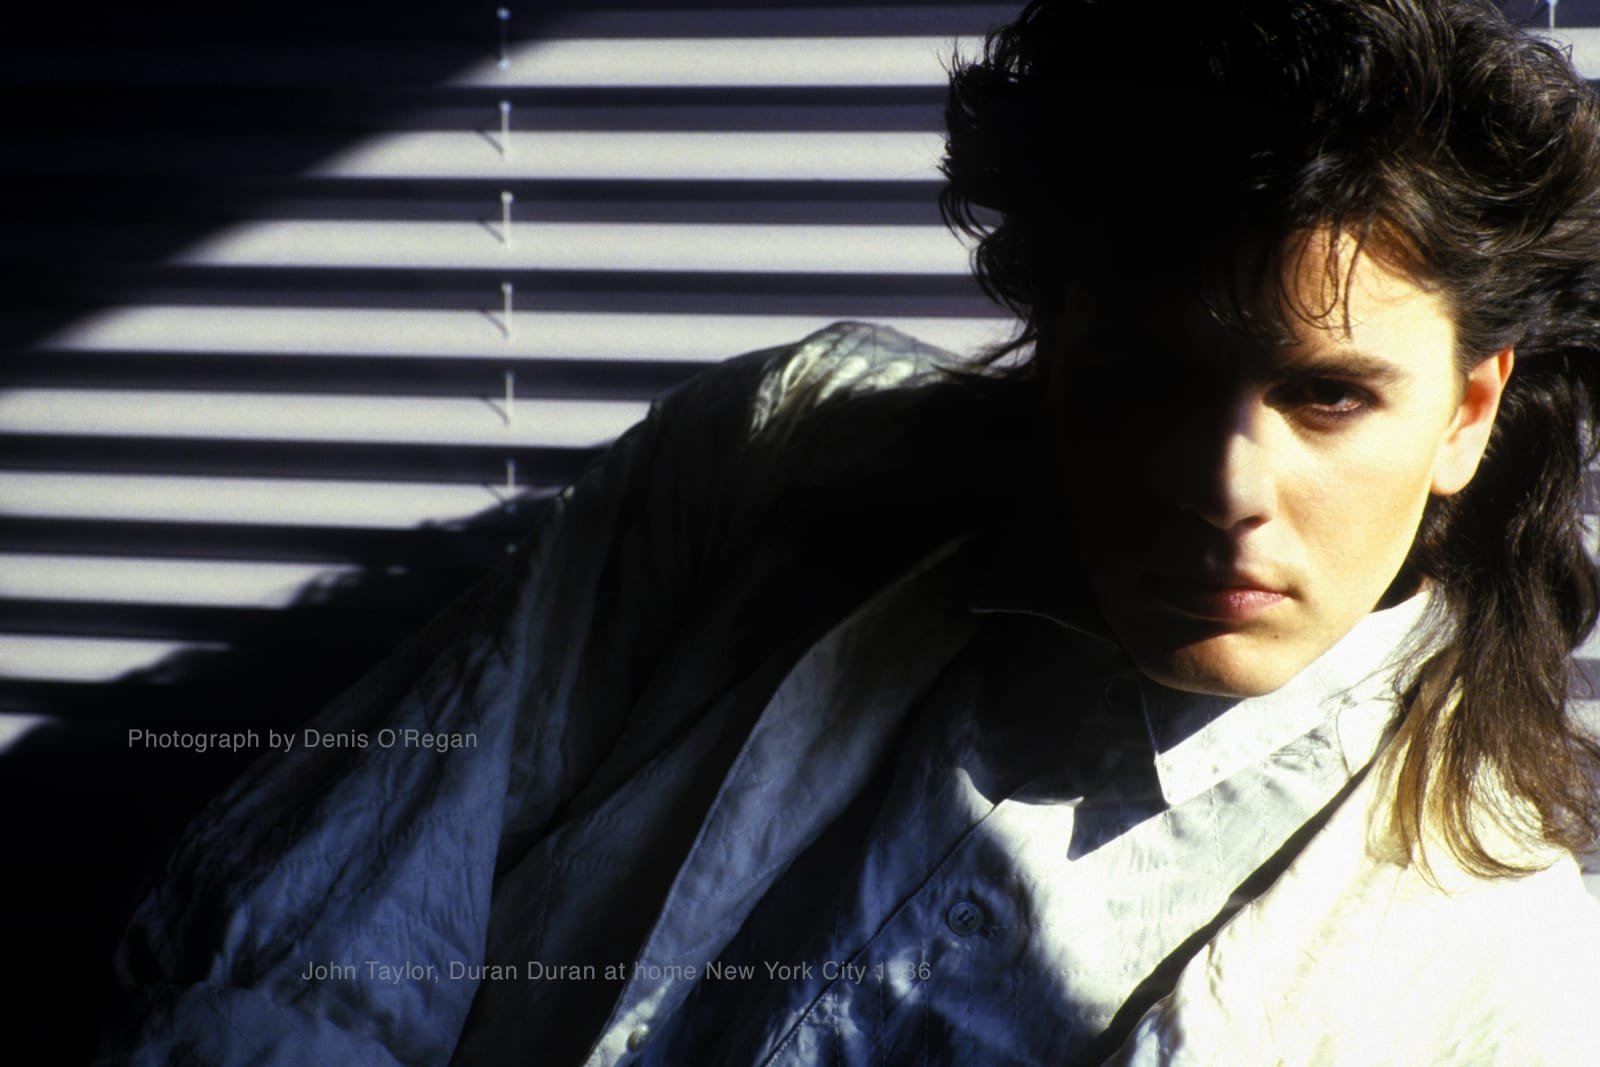 DURAN DURAN, John Taylor at home Manhattan, 1986